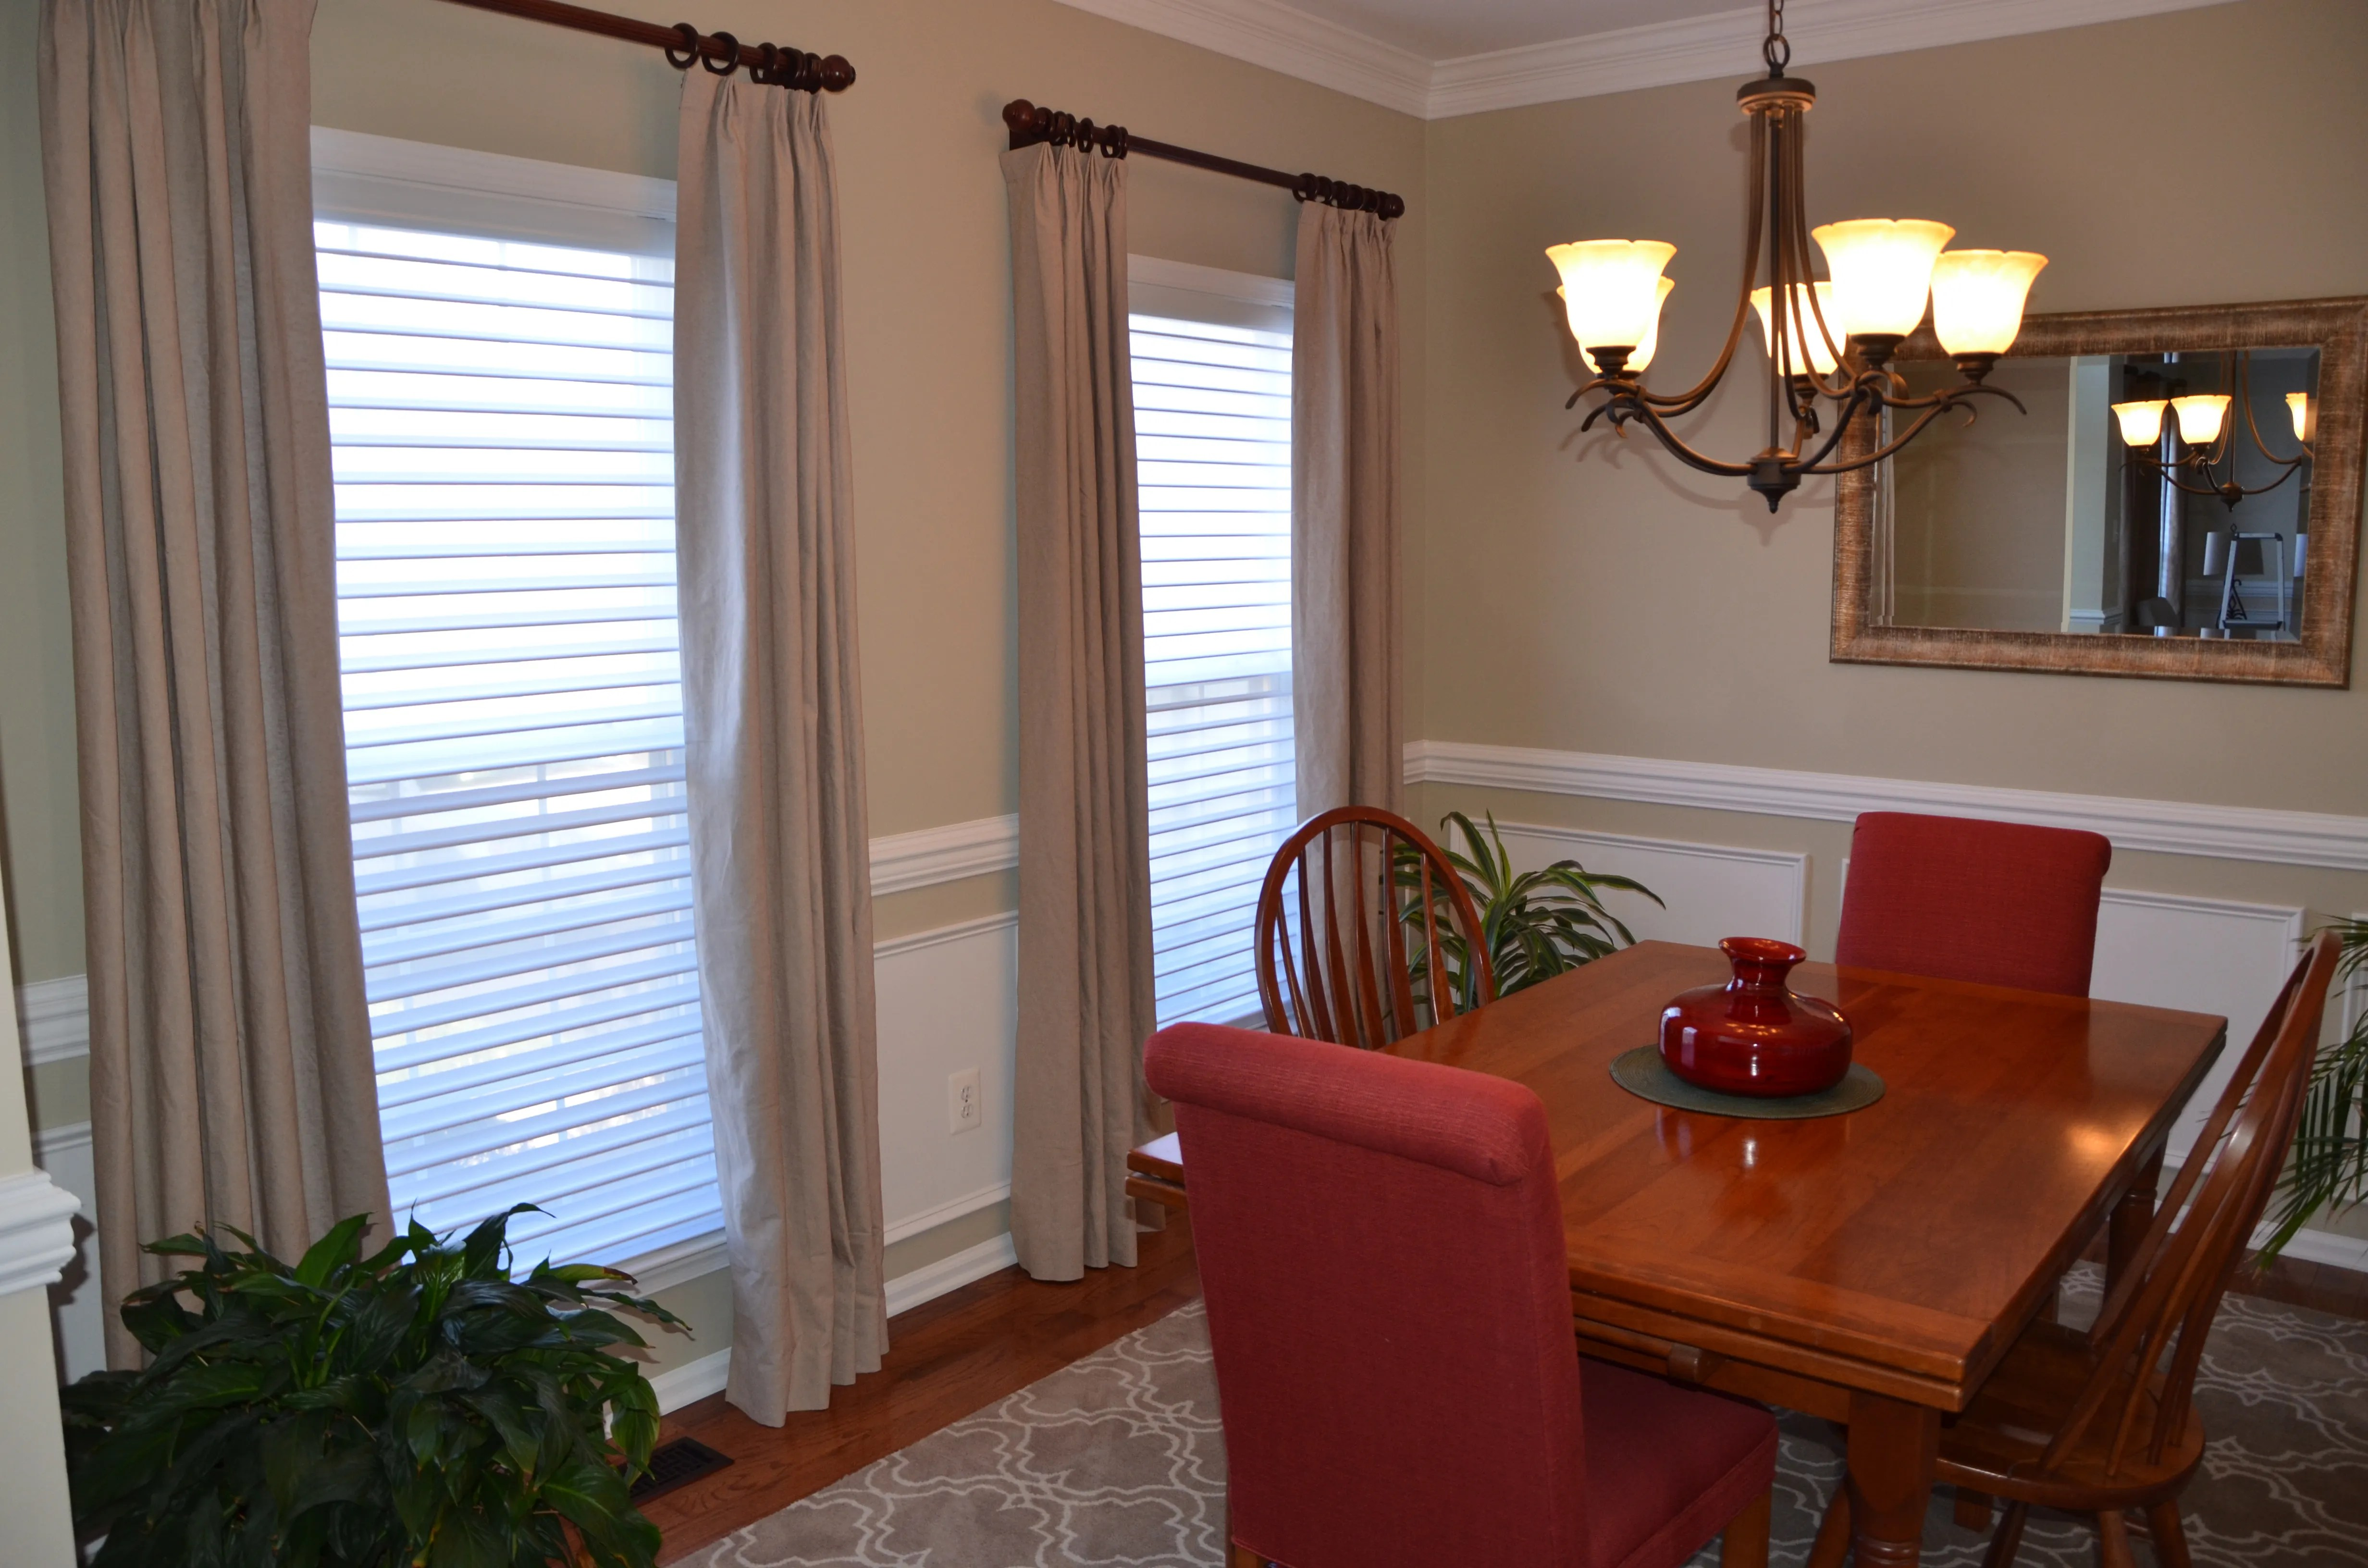 Dining Room by Intentional Designs, Inc. Photography by dreams come true productions.